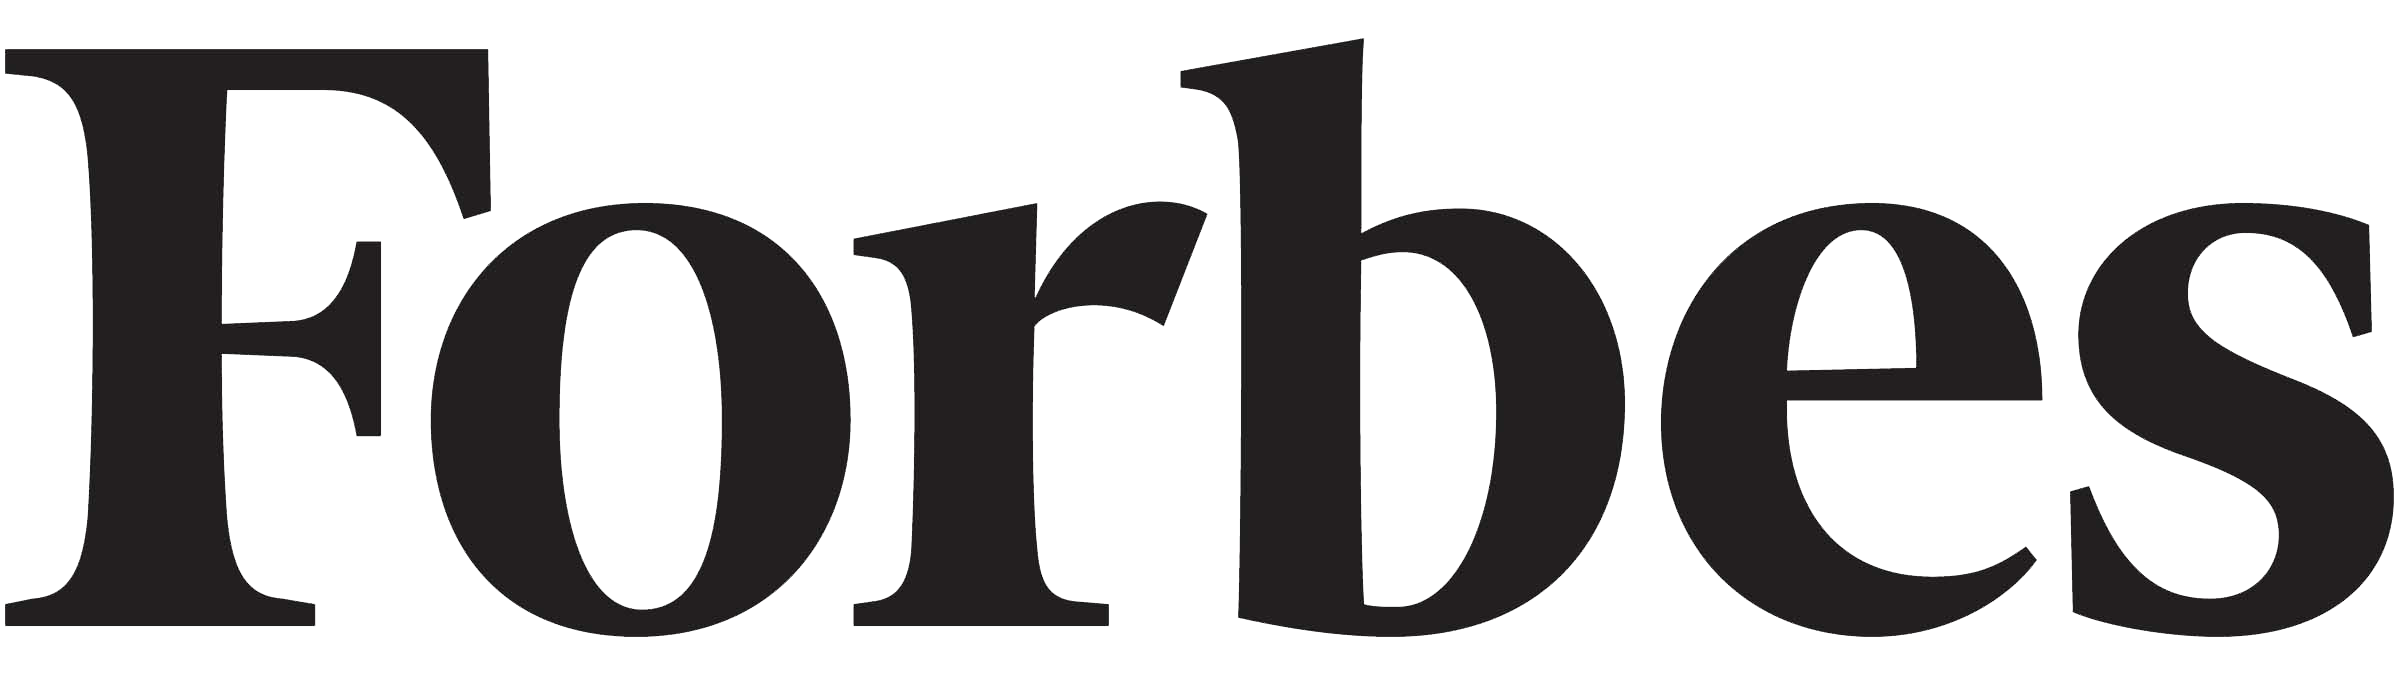 https://thevirtualsavvy.s3.us-east-2.amazonaws.com/wp-content/uploads/2021/07/07162954/forbes-logo-1.png